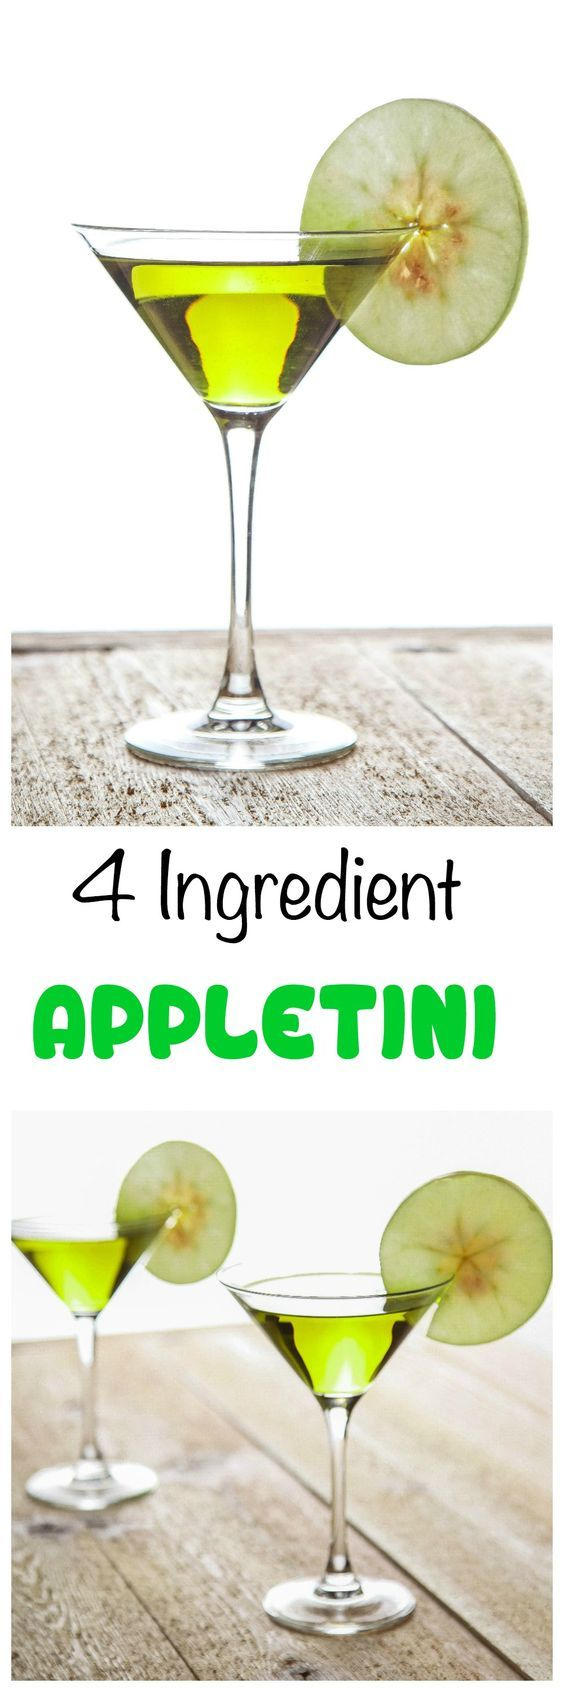 Appletini Recipe: Tantalize your taste buds with a crisp appletini. Only 3 ingredients and 2 minutes prep required!